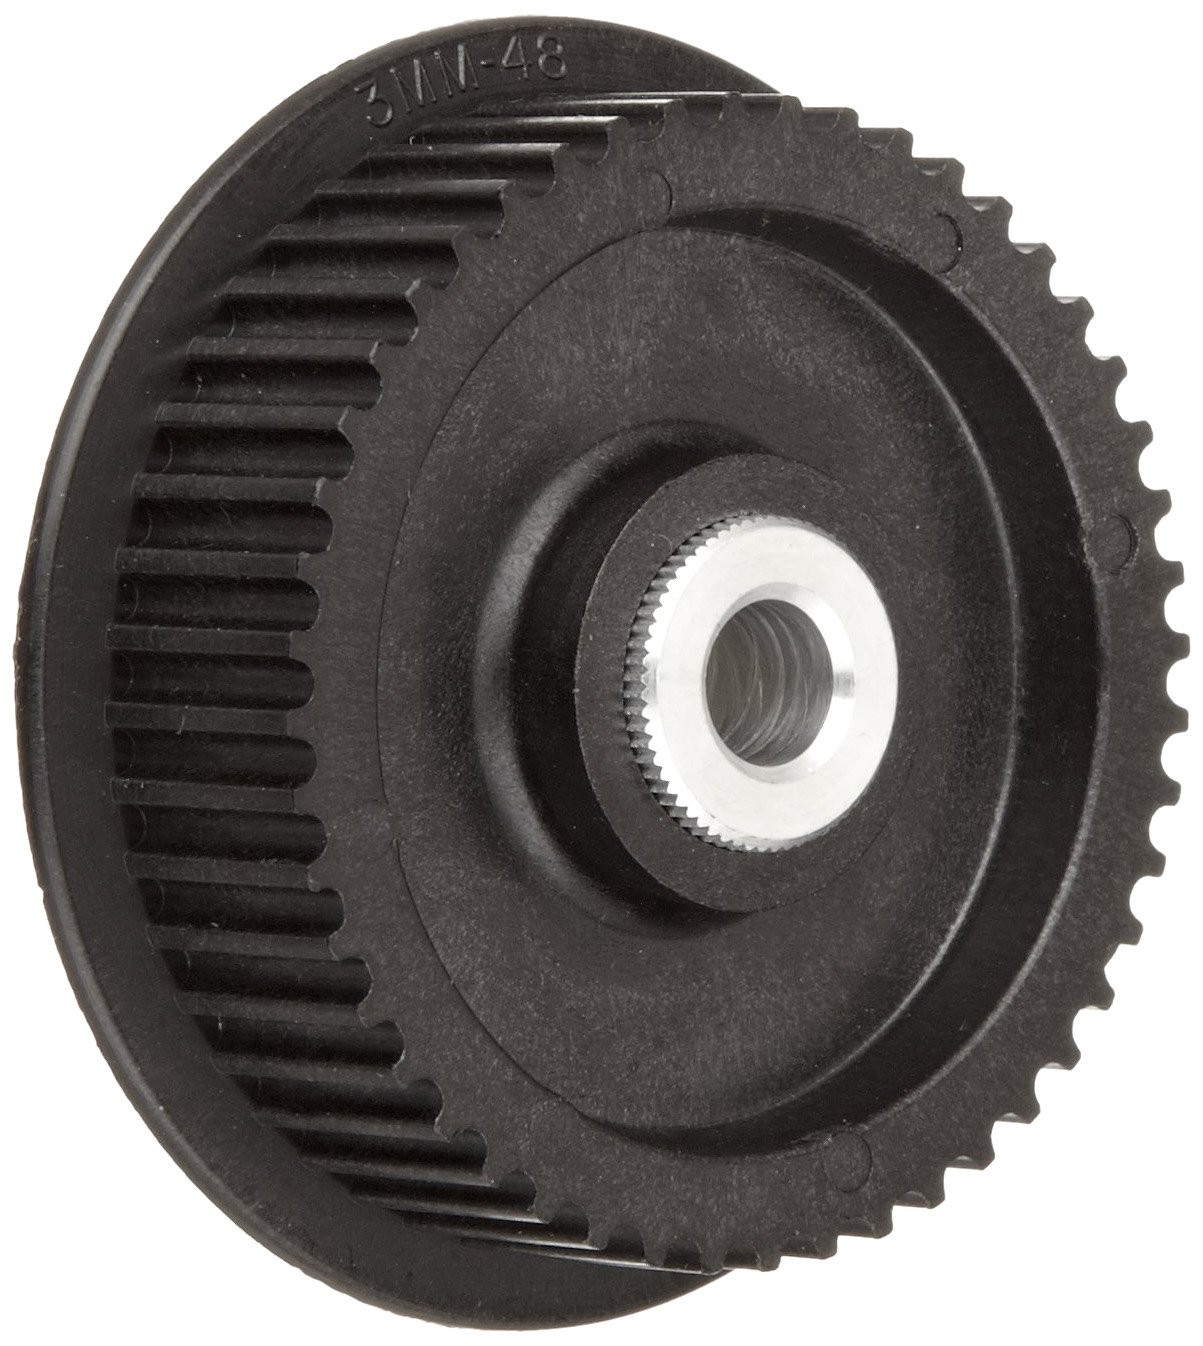 Boston Gear PLB5016DF09-1/4 Timing Pulley, 5 mm Pitch, 16 Grooves, 9mm Wide Belts, 0.250